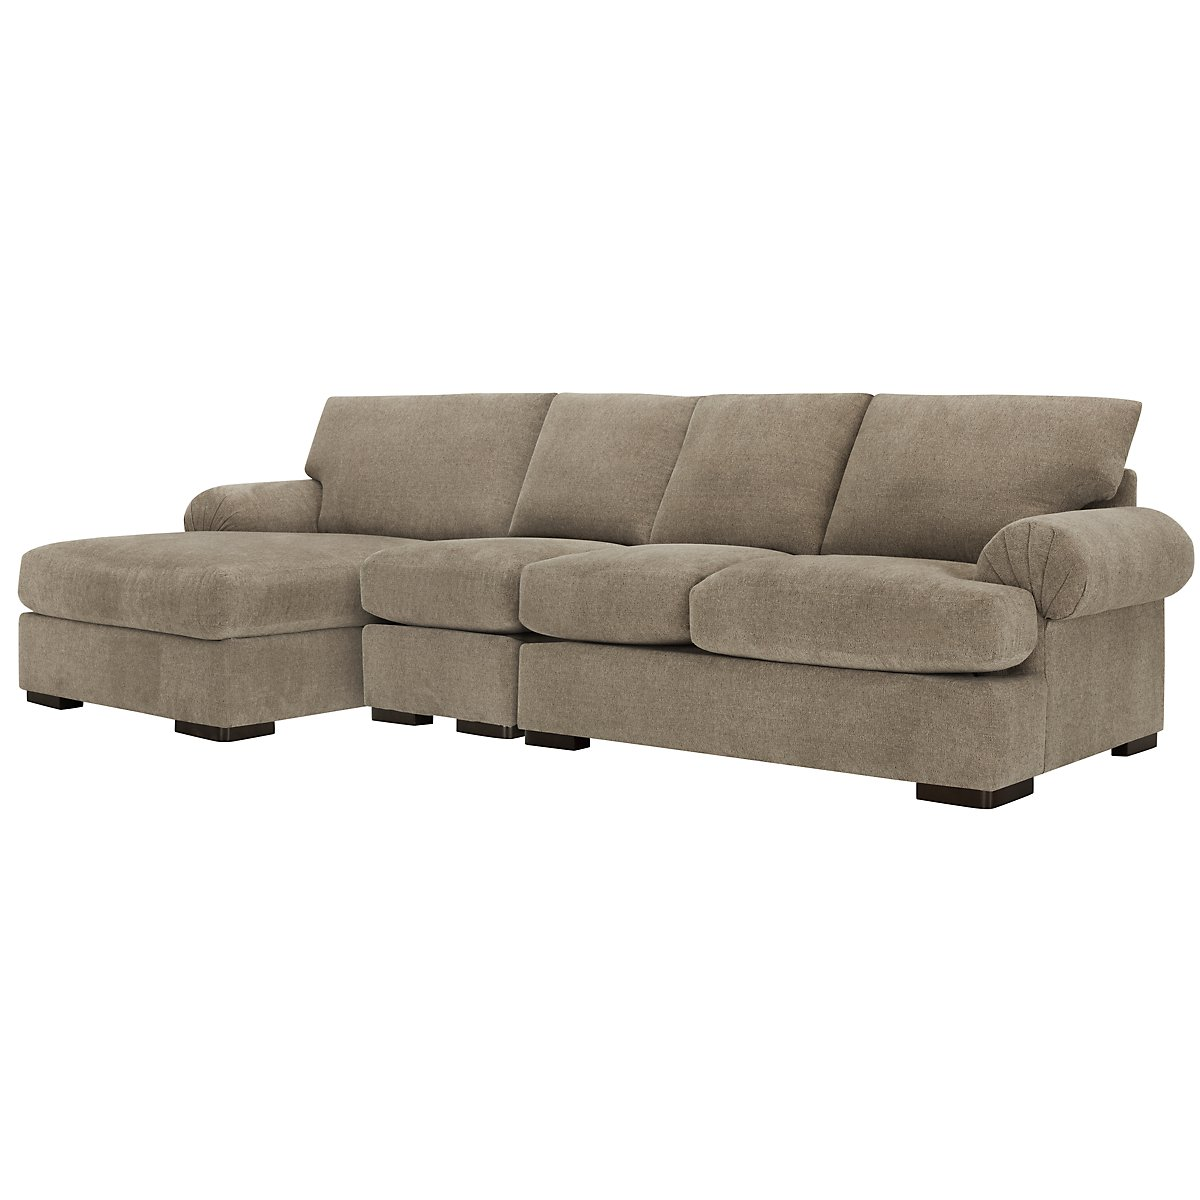 Belair Dark Taupe Fabric Small Left Chaise Sectional